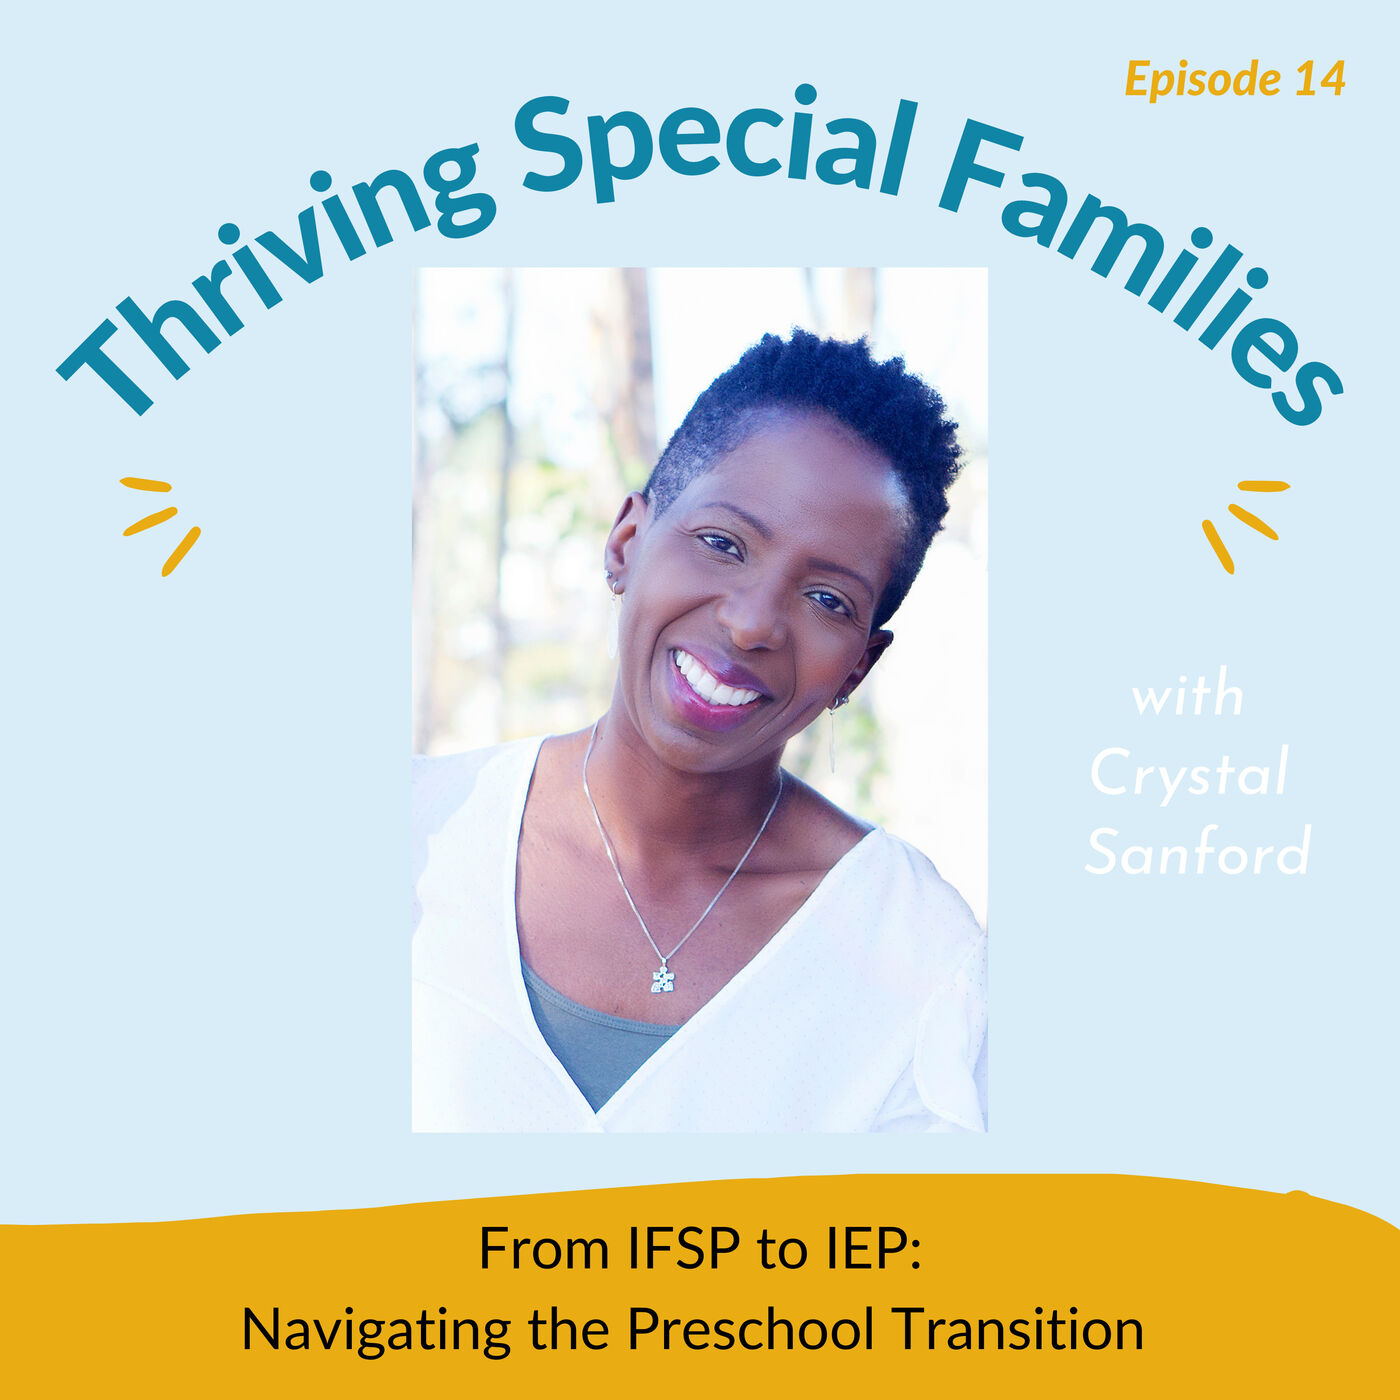 From IFSP to IEP: Navigating the Preschool Transition